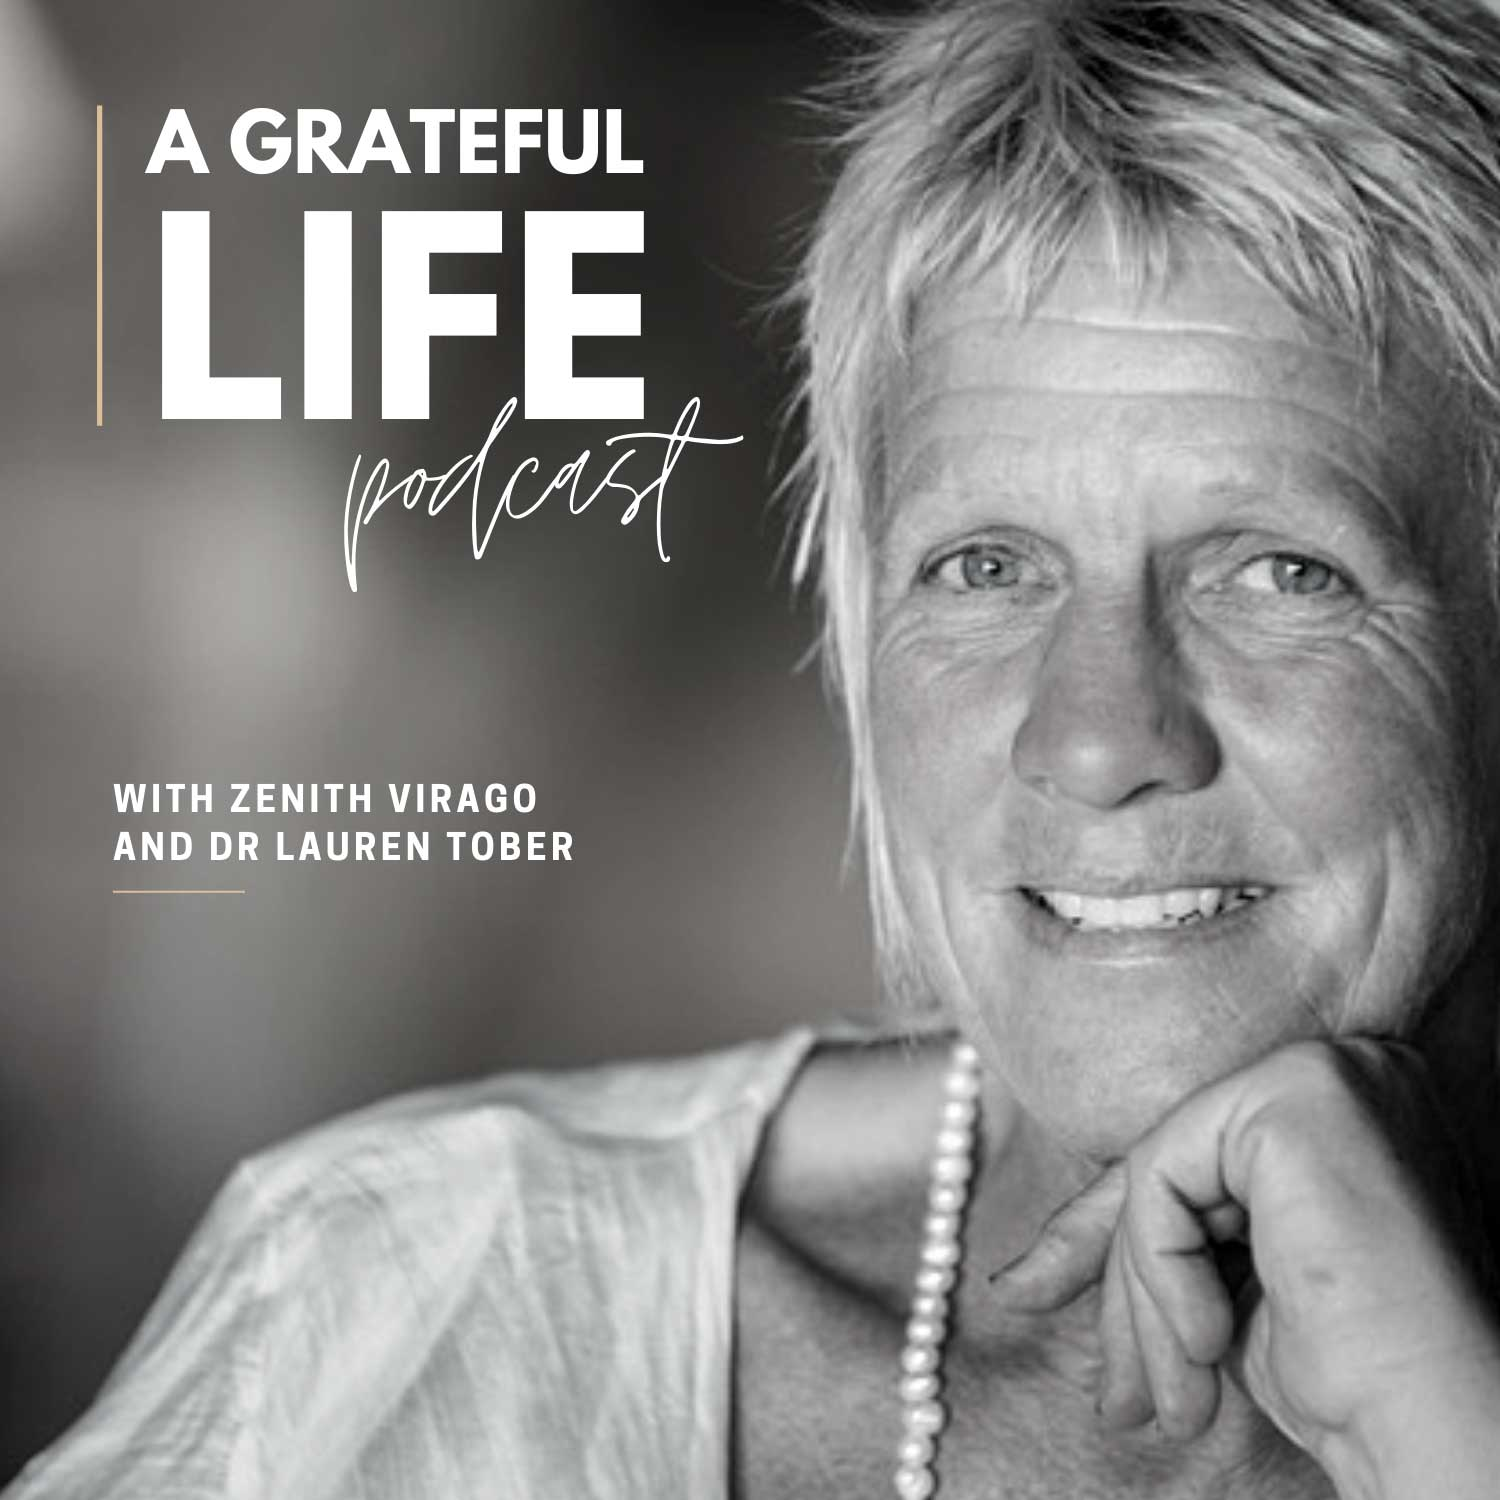 A Grateful Life Podcast with Zenith Virago